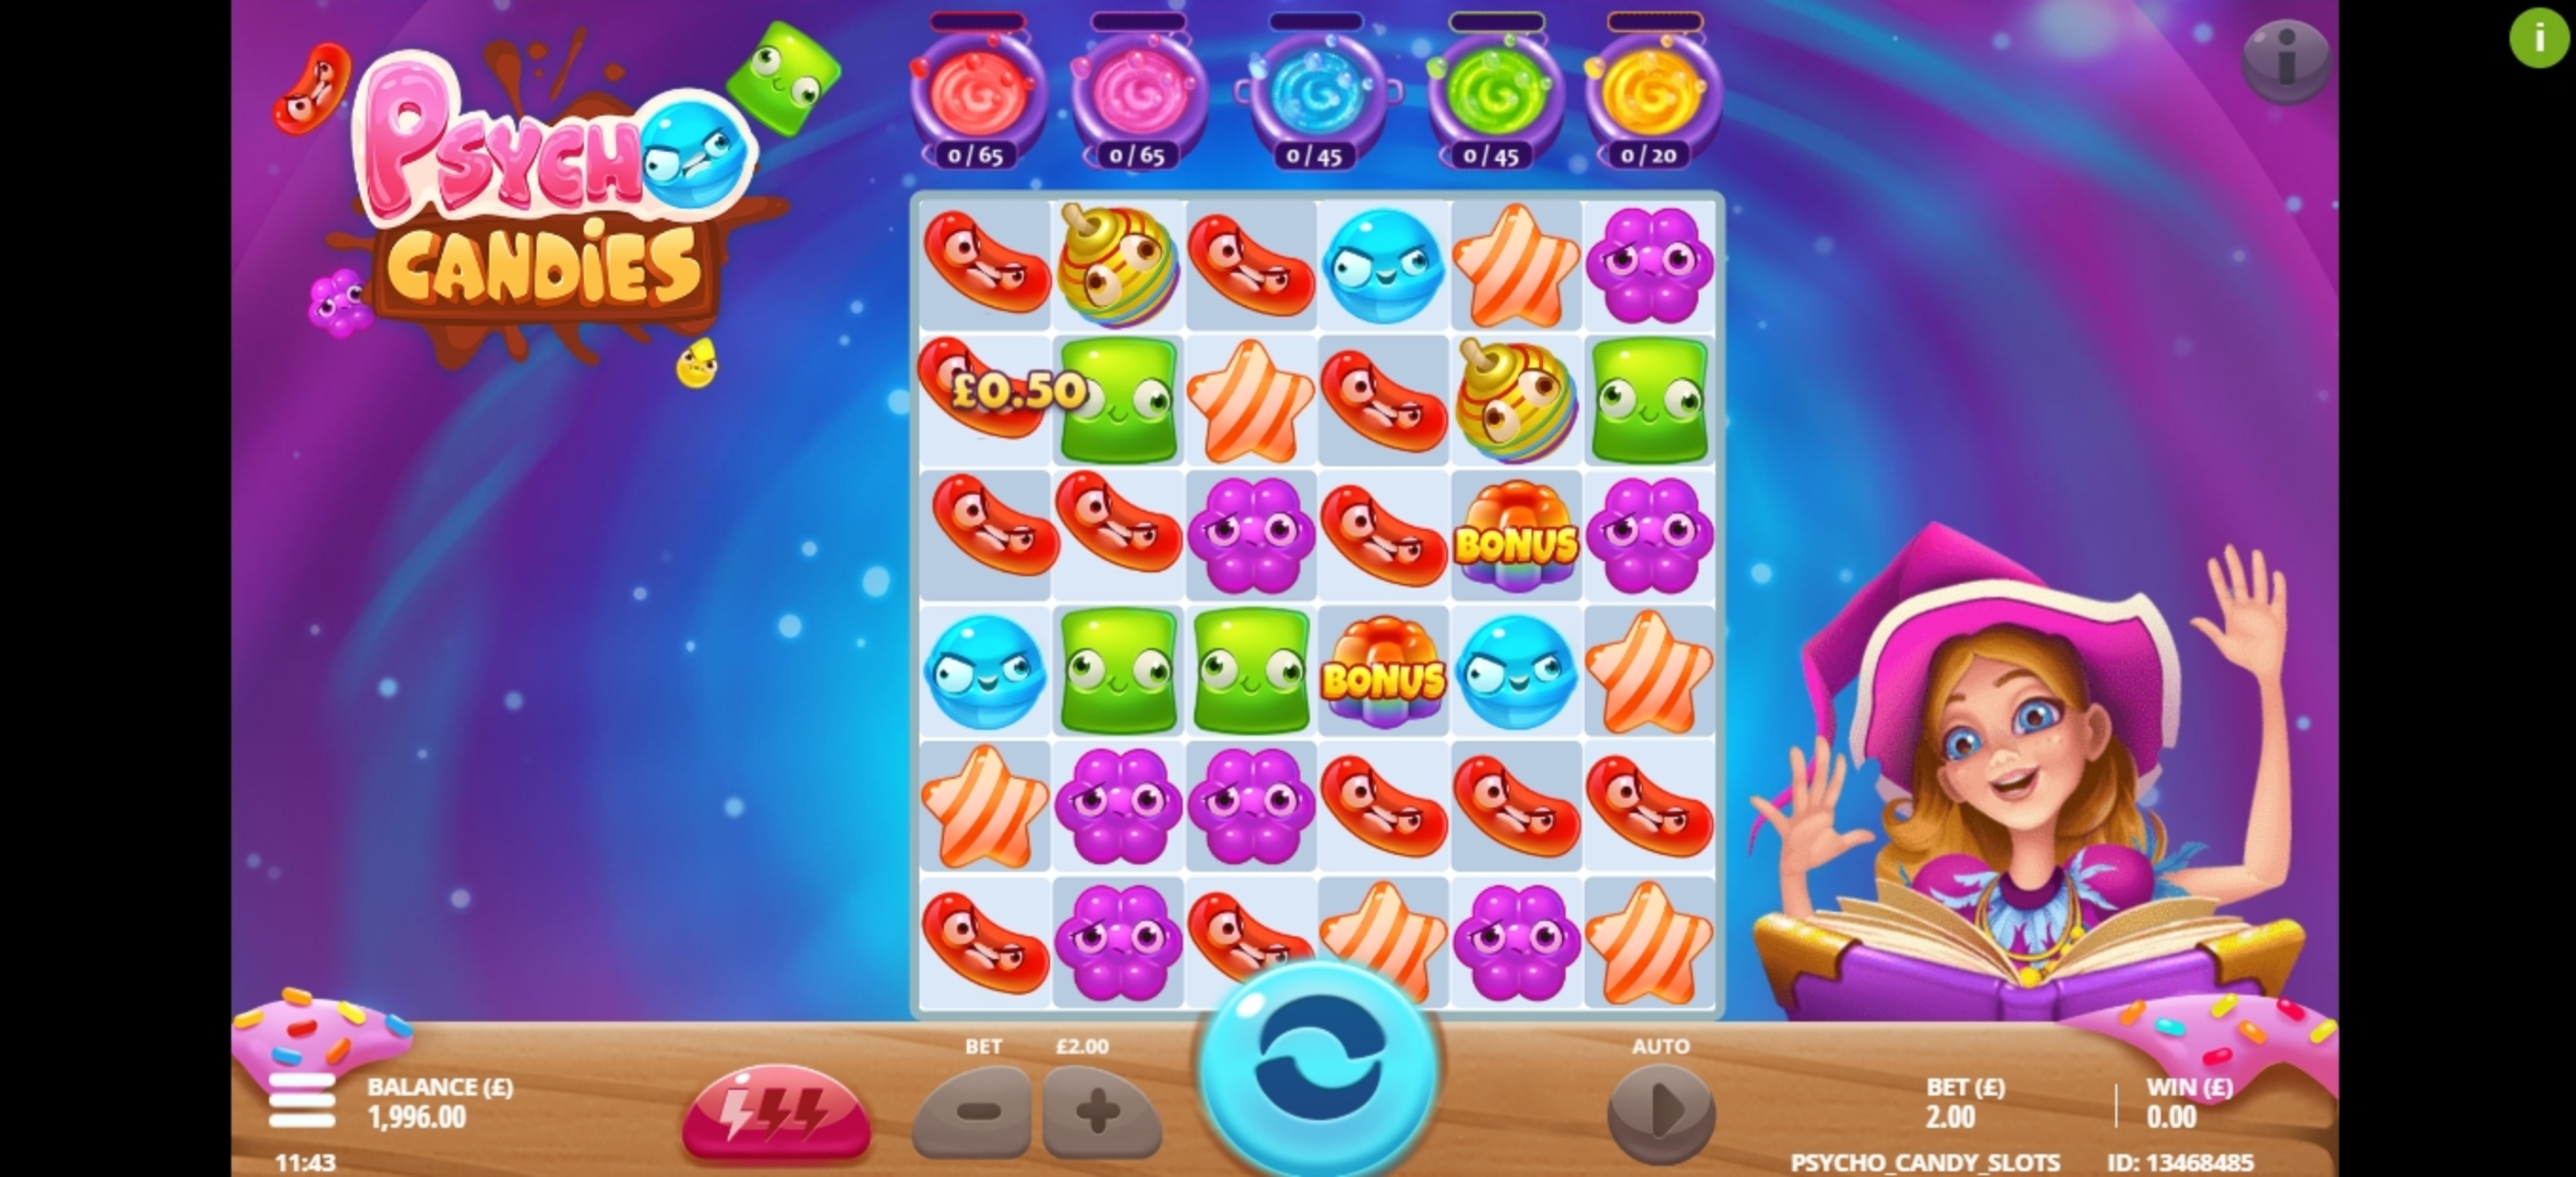 Win Money in Psycho Candies Free Slot Game by Gluck Games